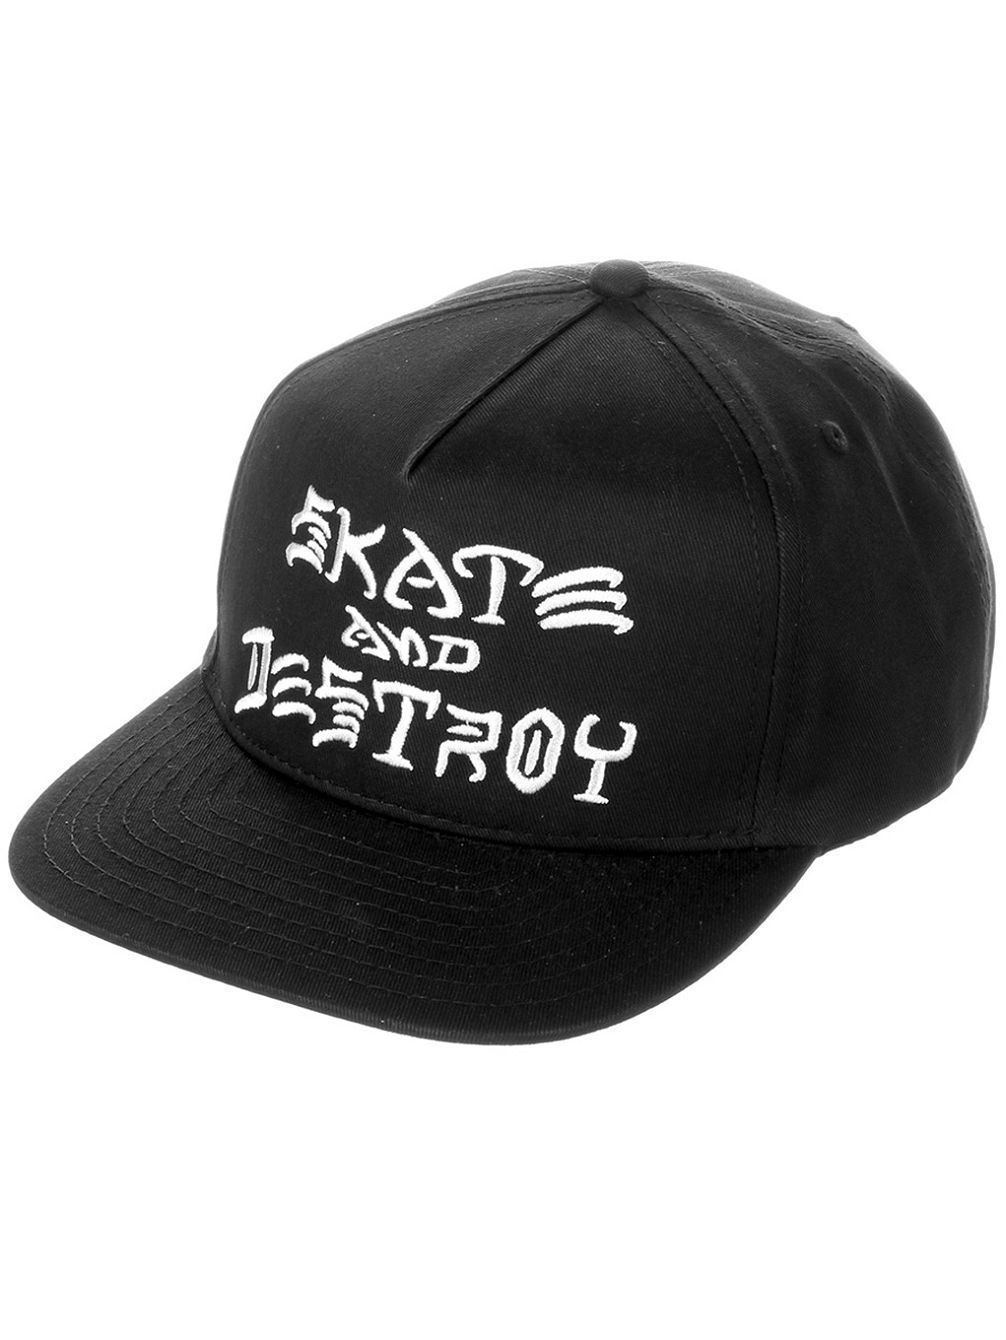 skate or destroy